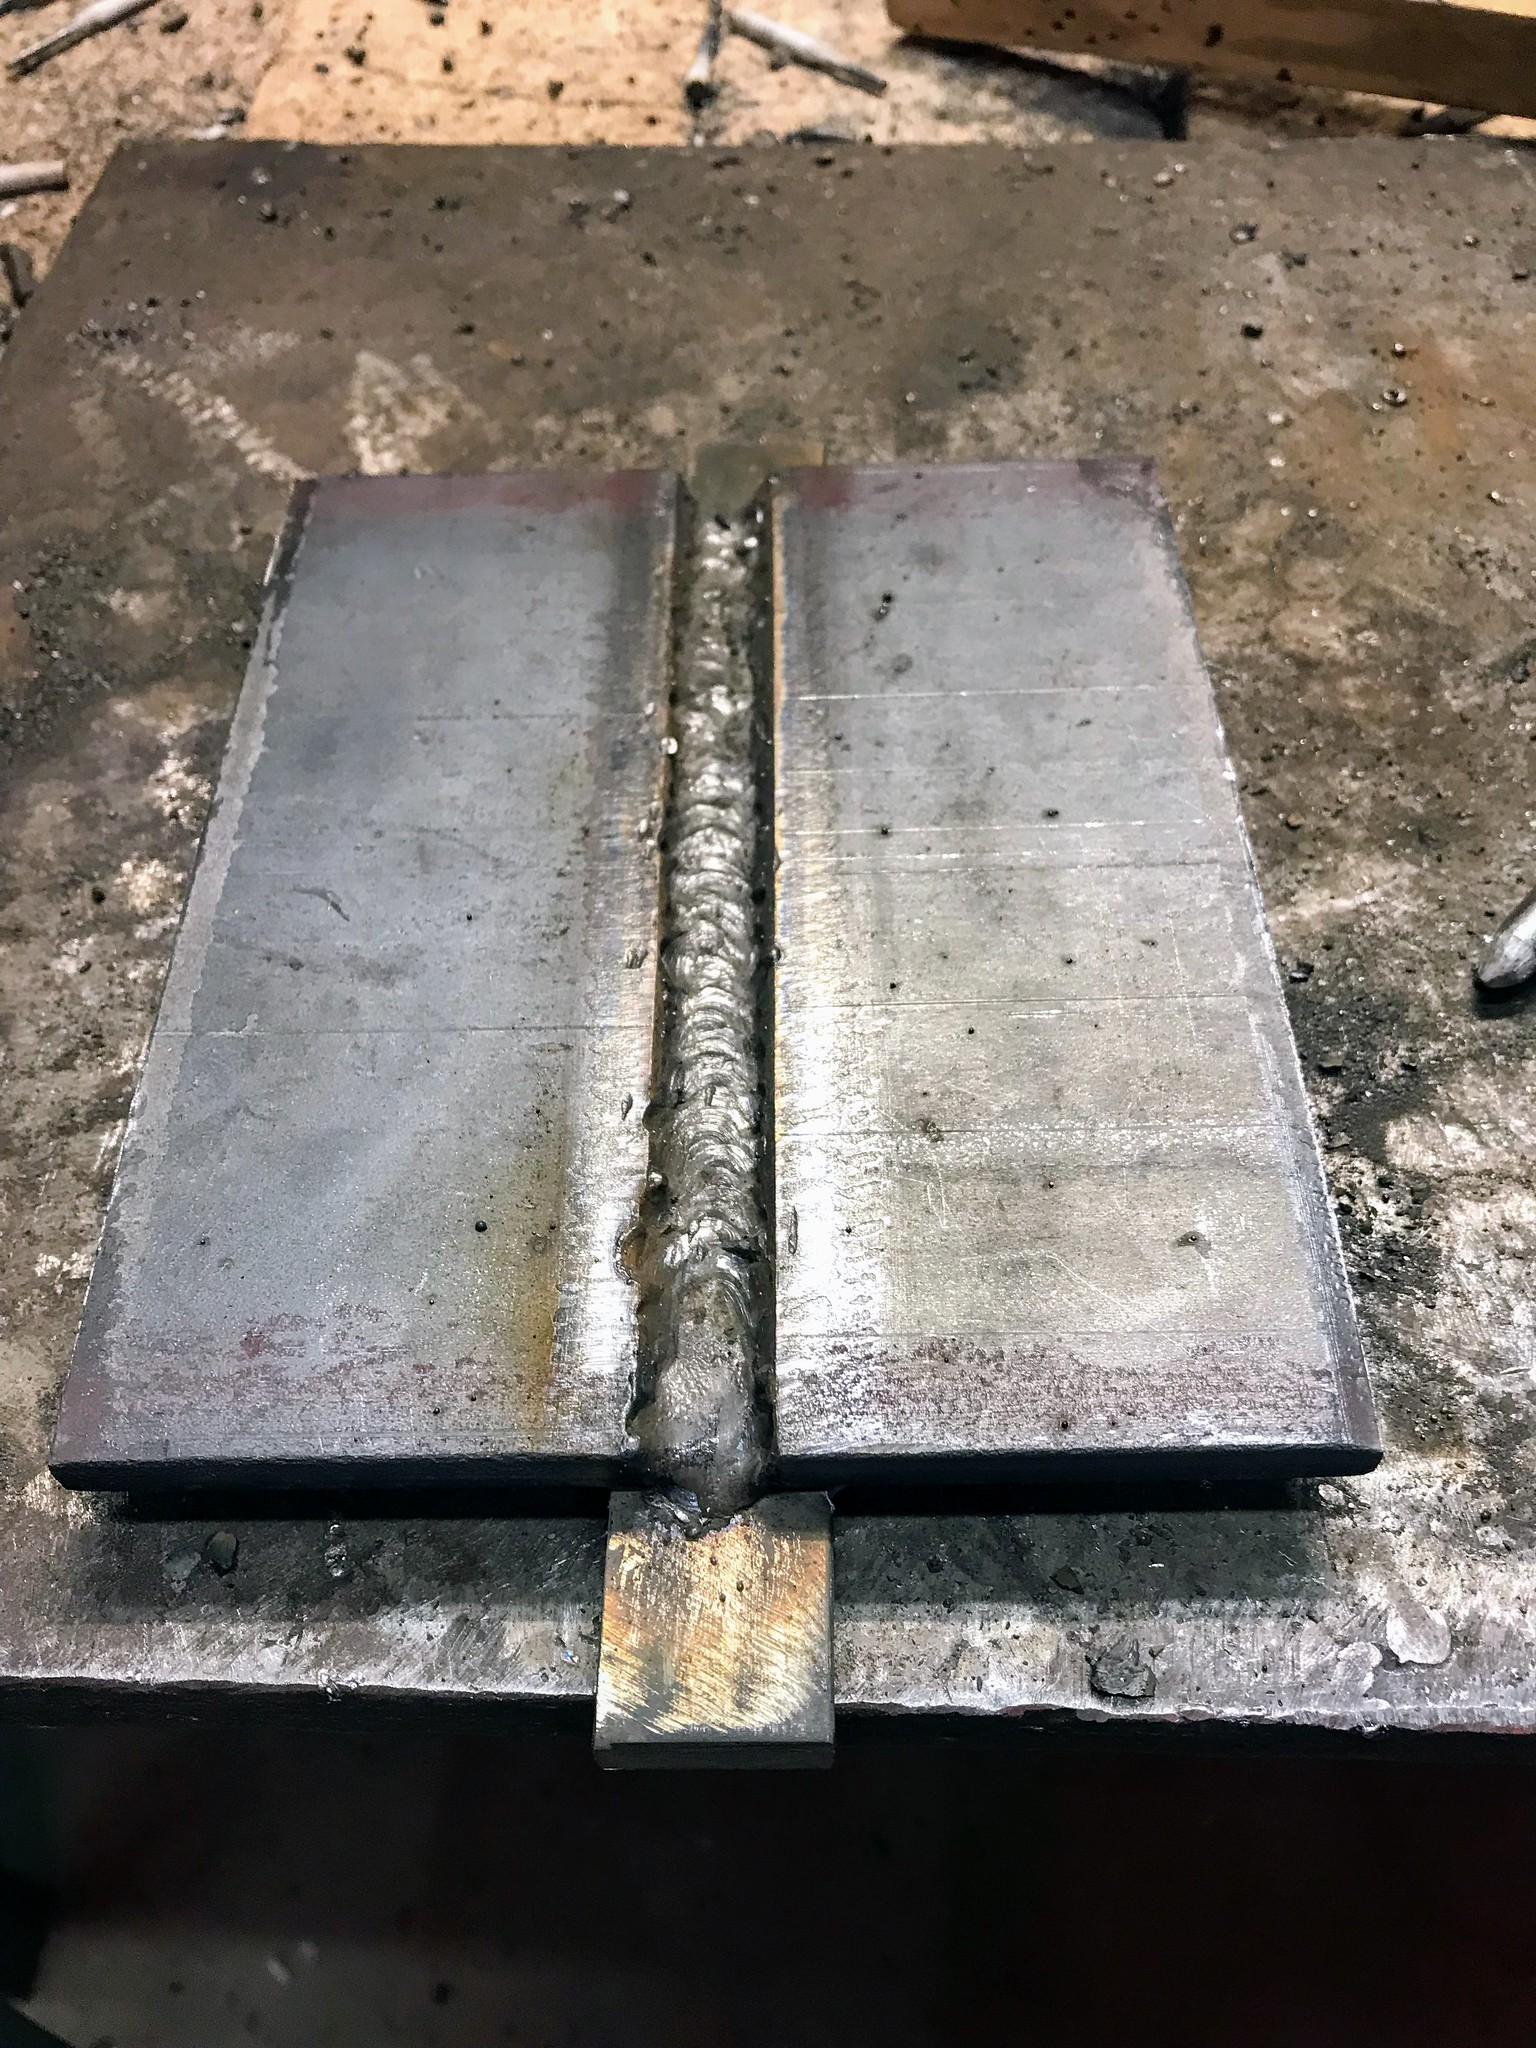 Test plate with root weld